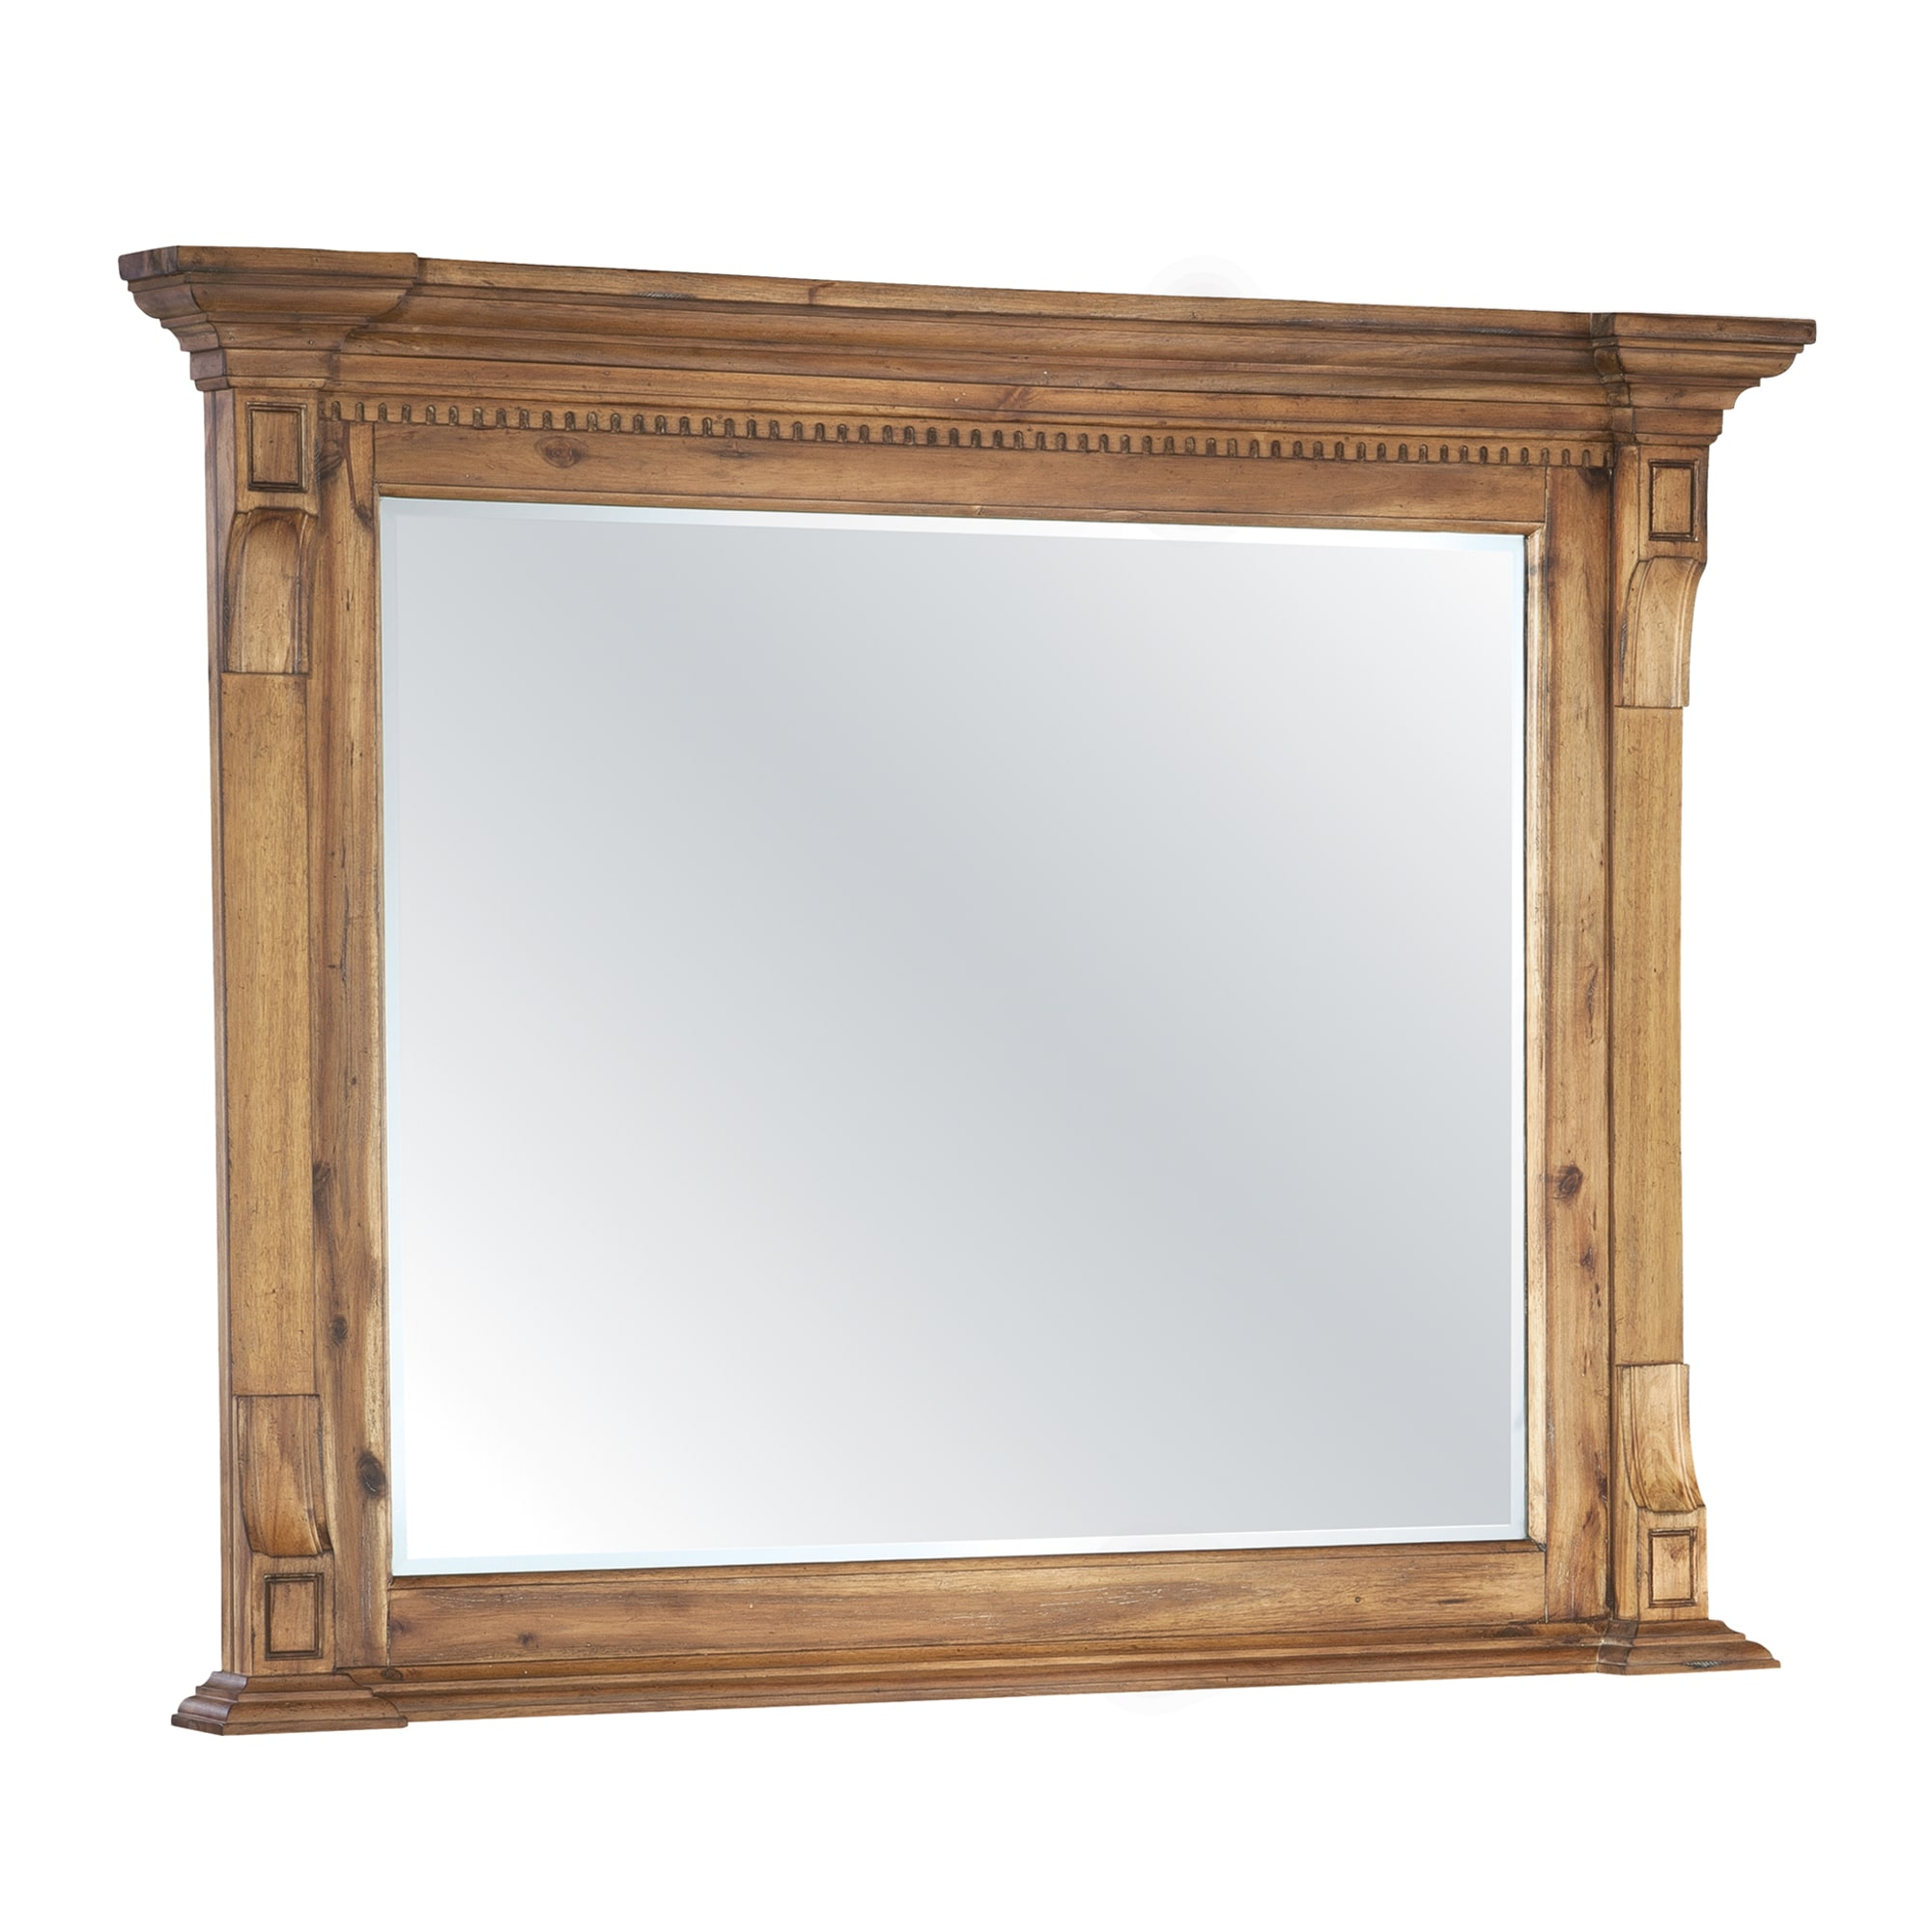 Image for 2-3367 Wellington Hall Mirror from Hekman Official Website